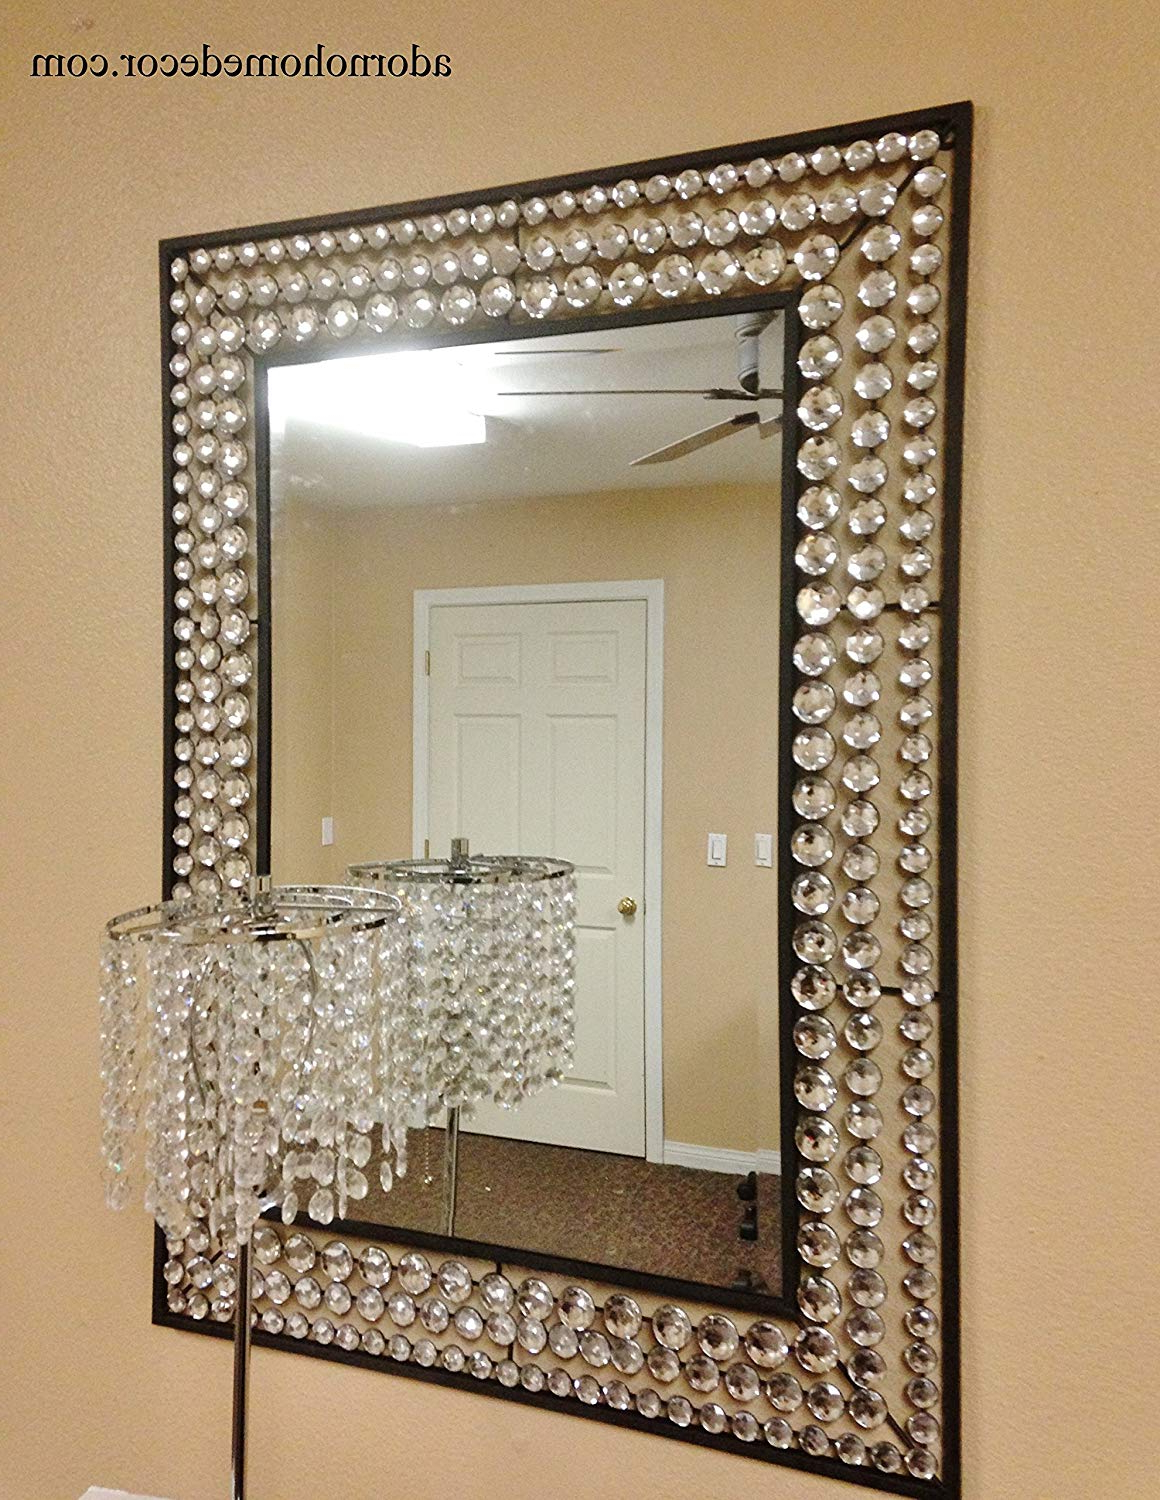 Amazon: Large Metal Wall Crystal Jewel Mirror Rustic Pertaining To 2019 Unique Wall Mirrors (View 2 of 20)